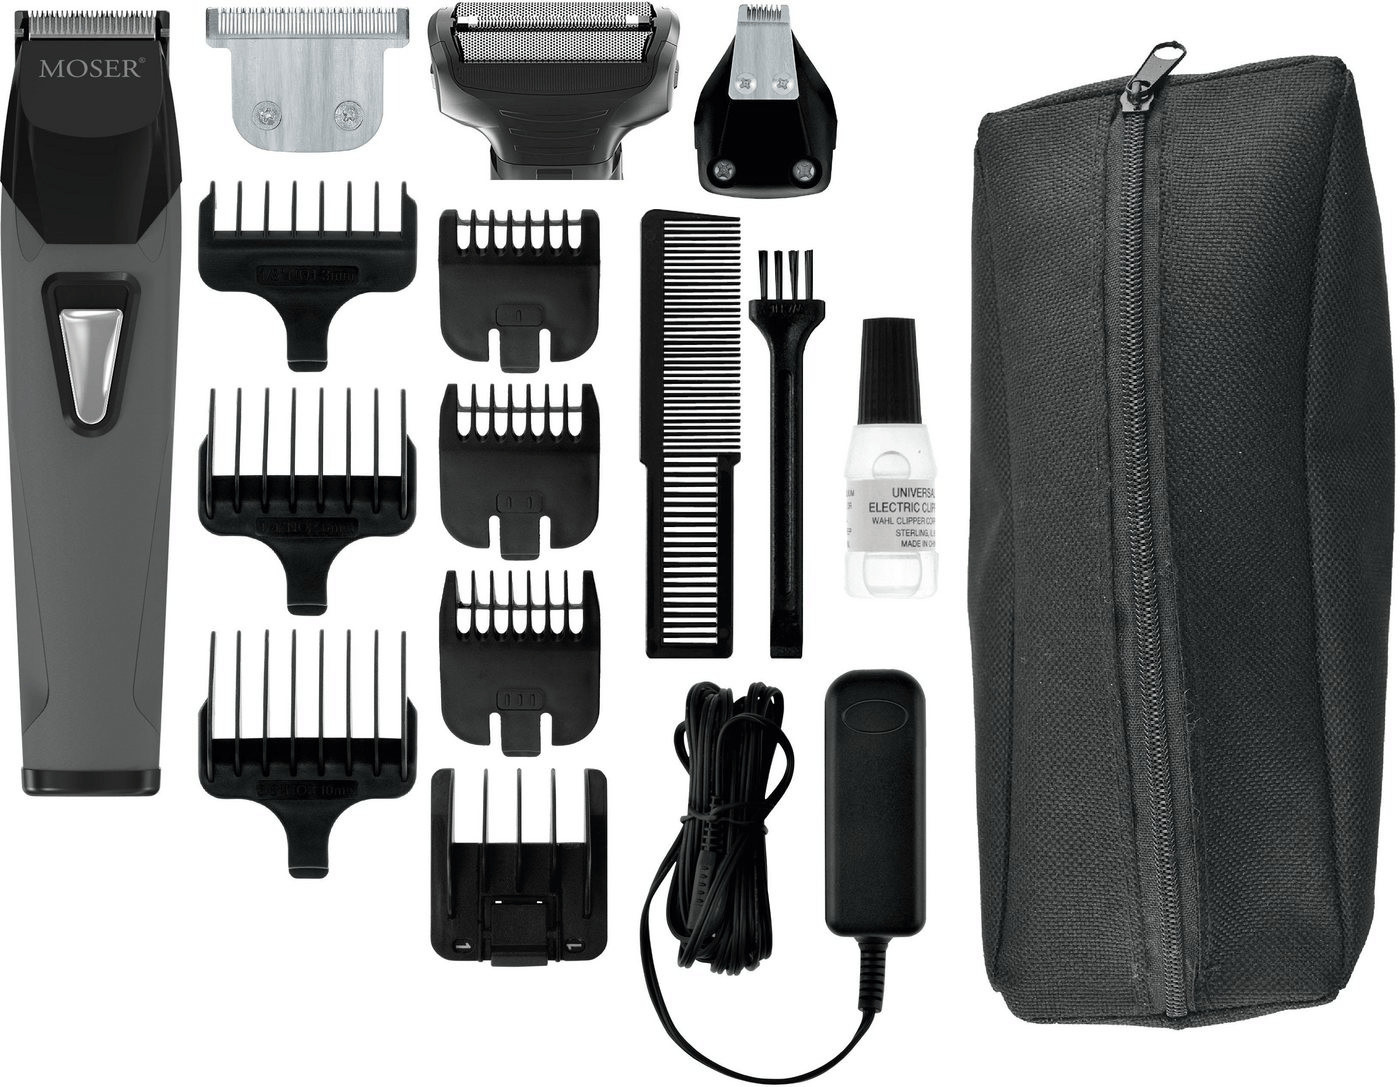 Moser All-In-One-Trimmer 1055.0460